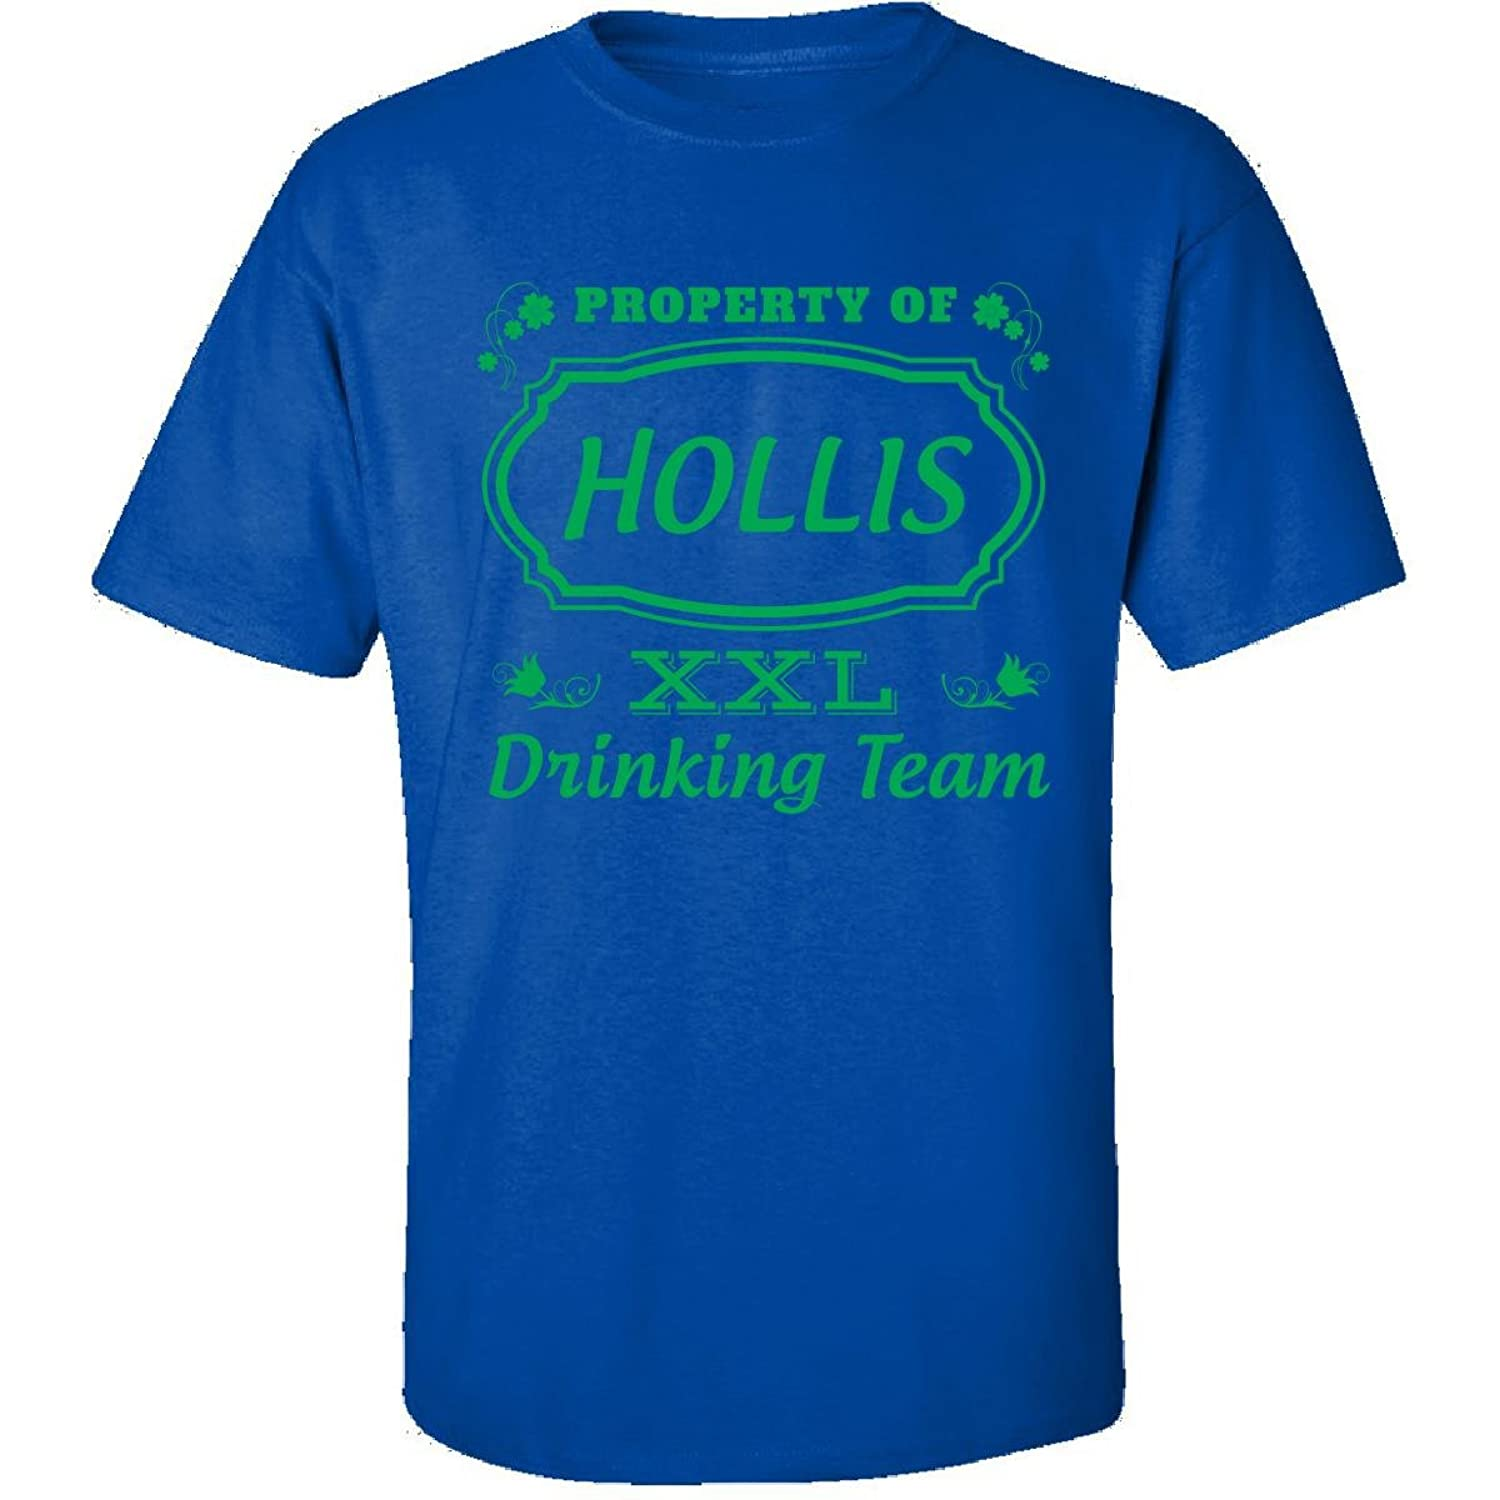 Property Of Hollis St Patrick Day Beer Drinking Team - Adult Shirt